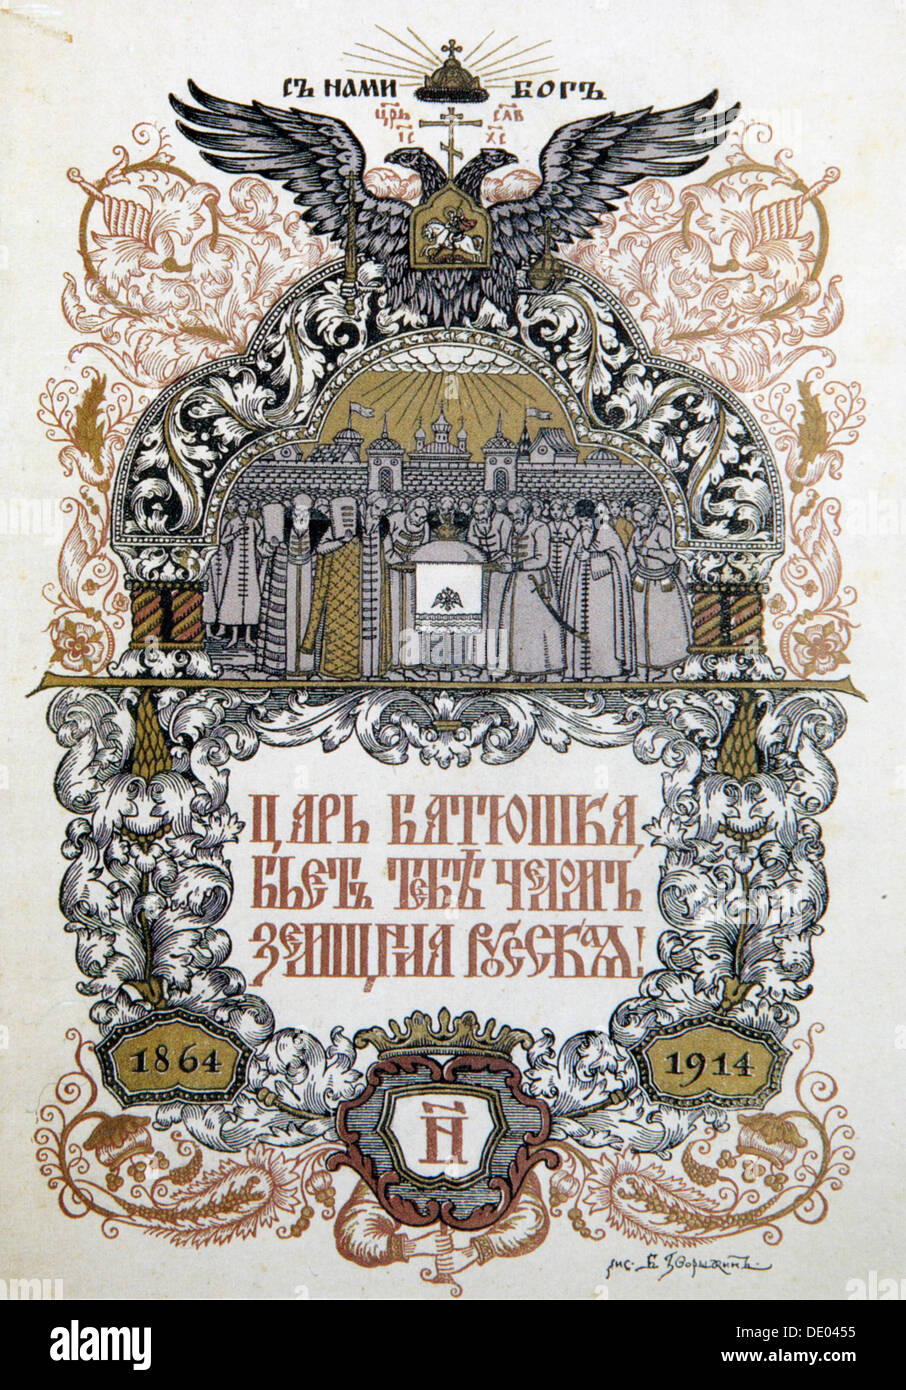 Concert programme to celebrate of the 50th anniversary of the Zemstvo (local government), 1914. Artist: Boris Zvorykin - Stock Image